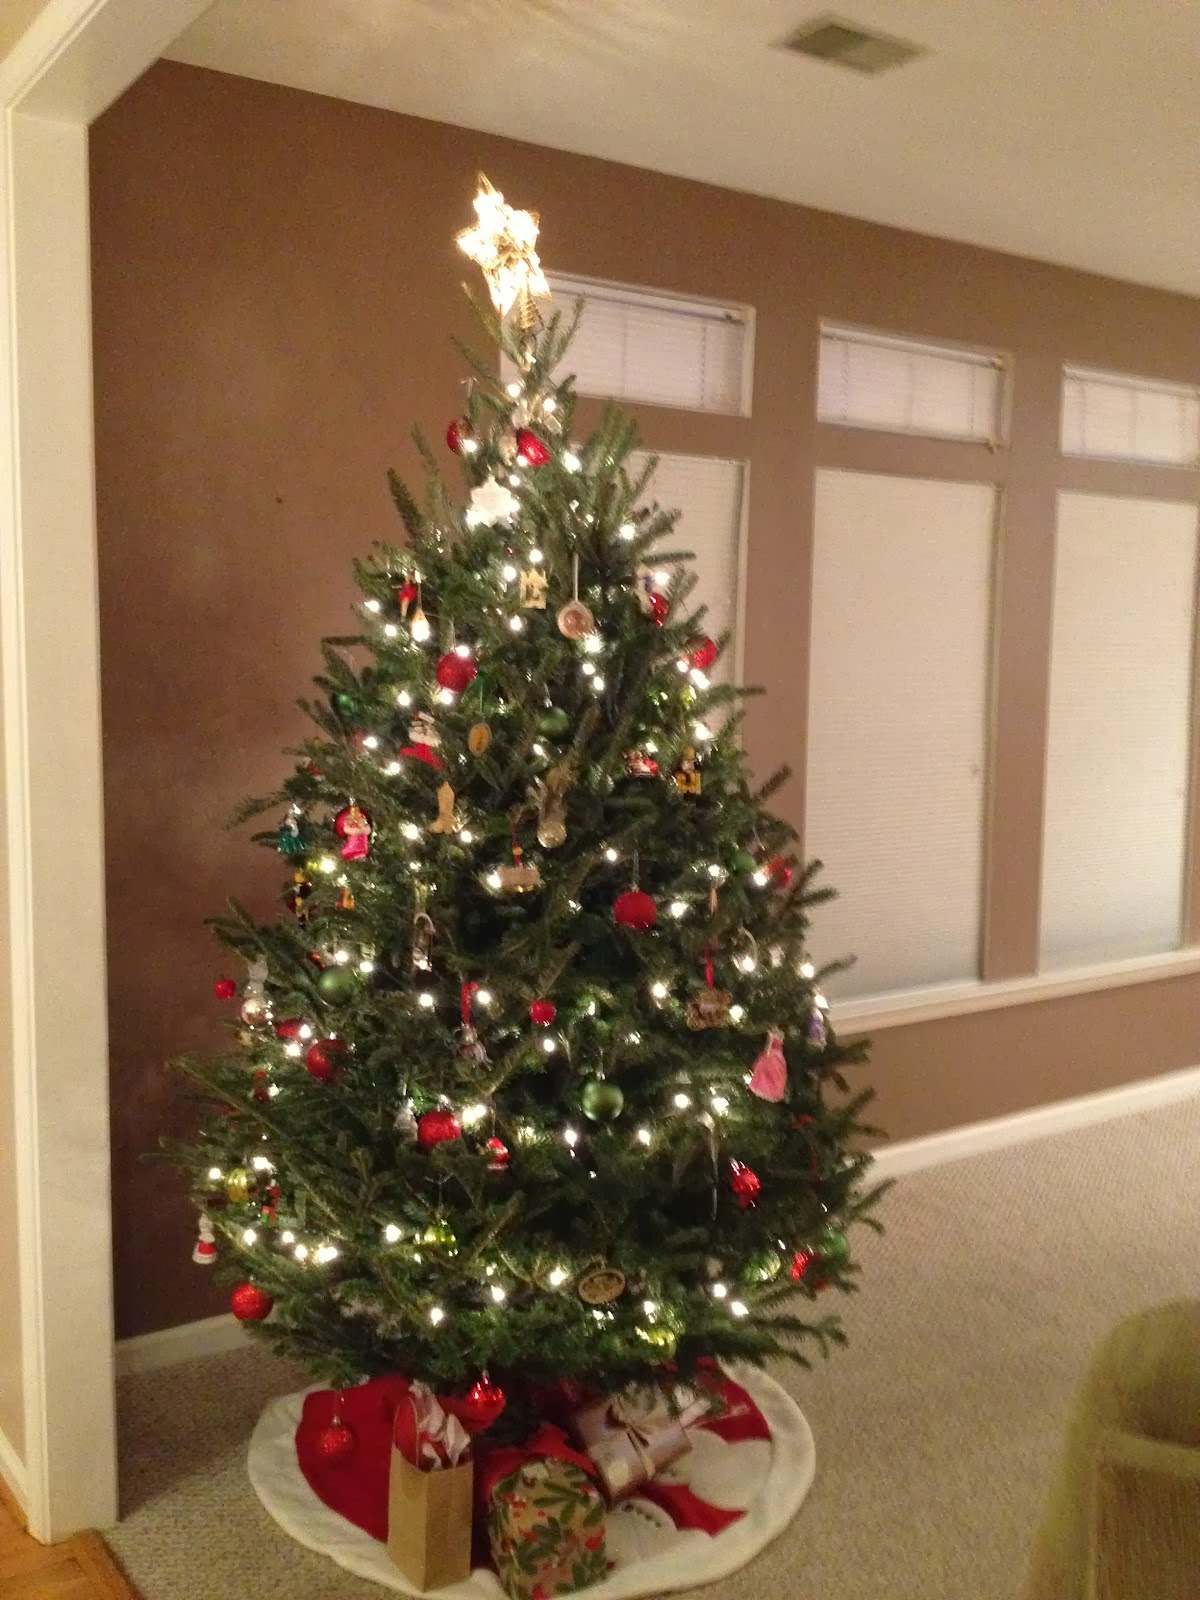 Friends Of Liberty Archives: Christmas Tree Tips 2016:Keep your Tree ...